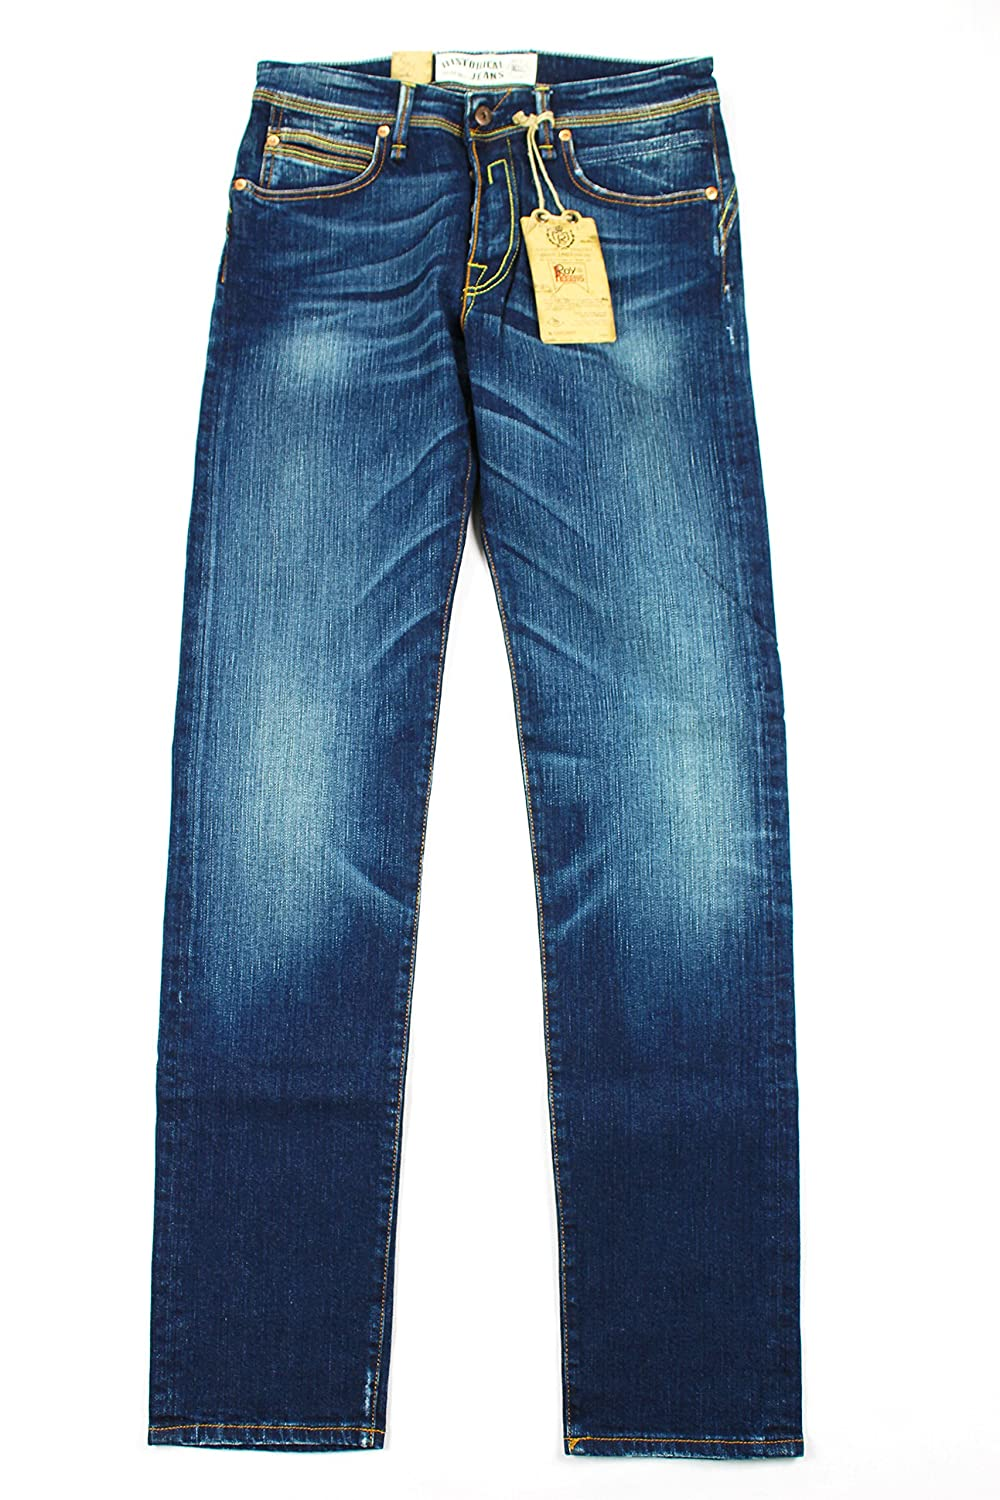 Roy Roger's Mens Classic Straight Leg Jeans - Blue Cotton